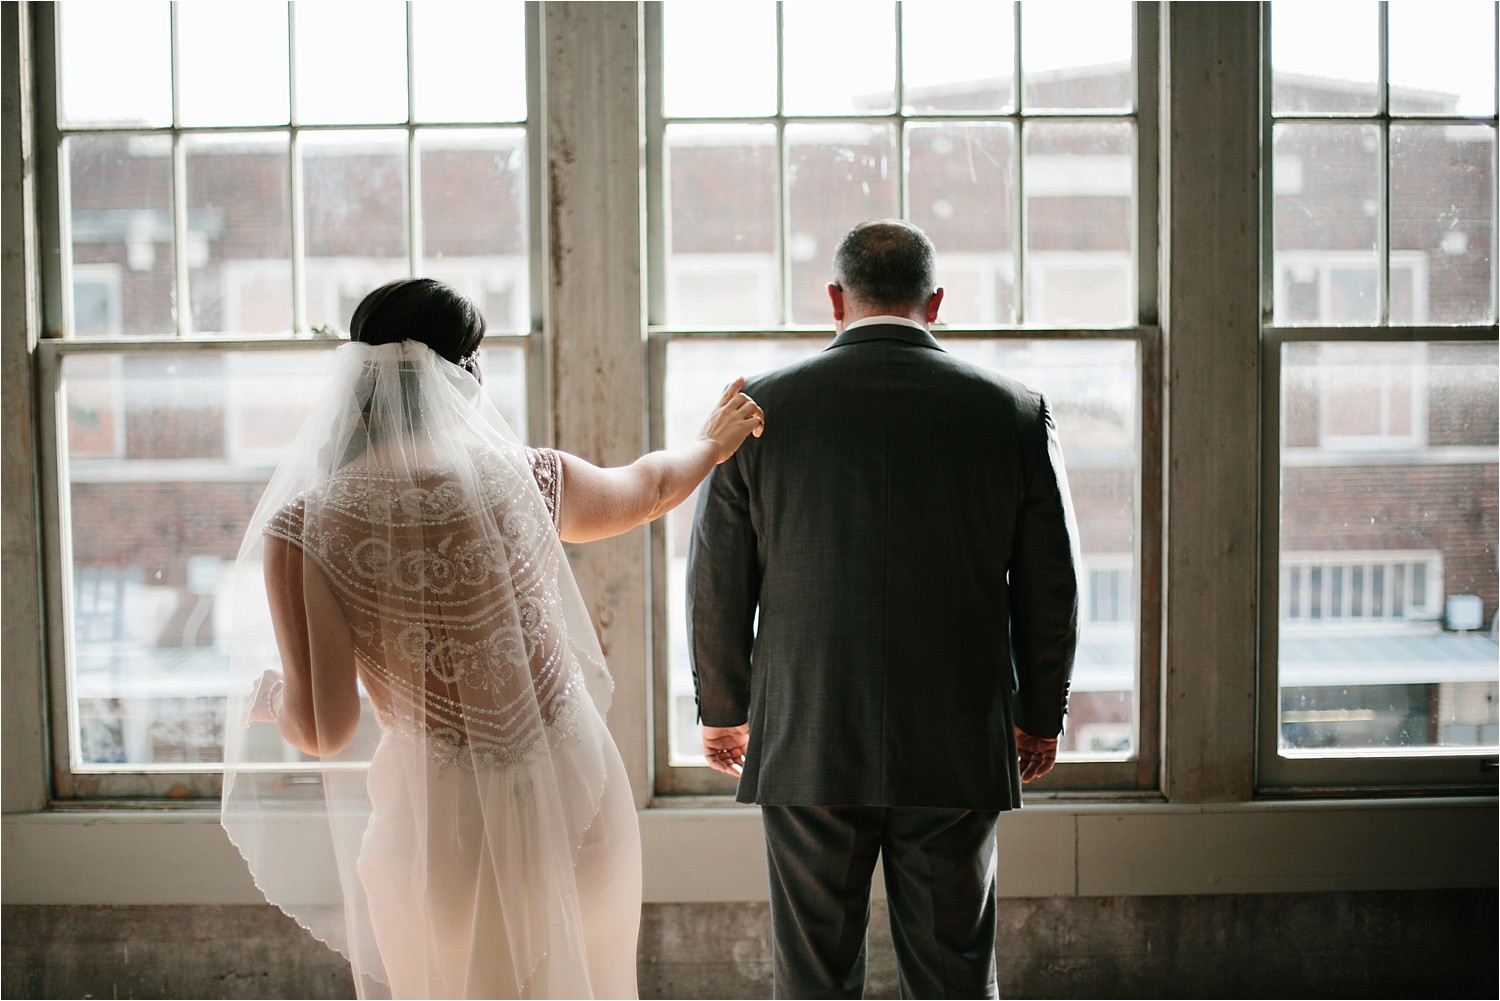 whittney-drew-__-an-intimate-wine-and-navy-wedding-in-an-industrial-venue-at-loft-123-in-paris-tx-by-north-texas-wedding-photographer-rachel-meagan-photography-_-022